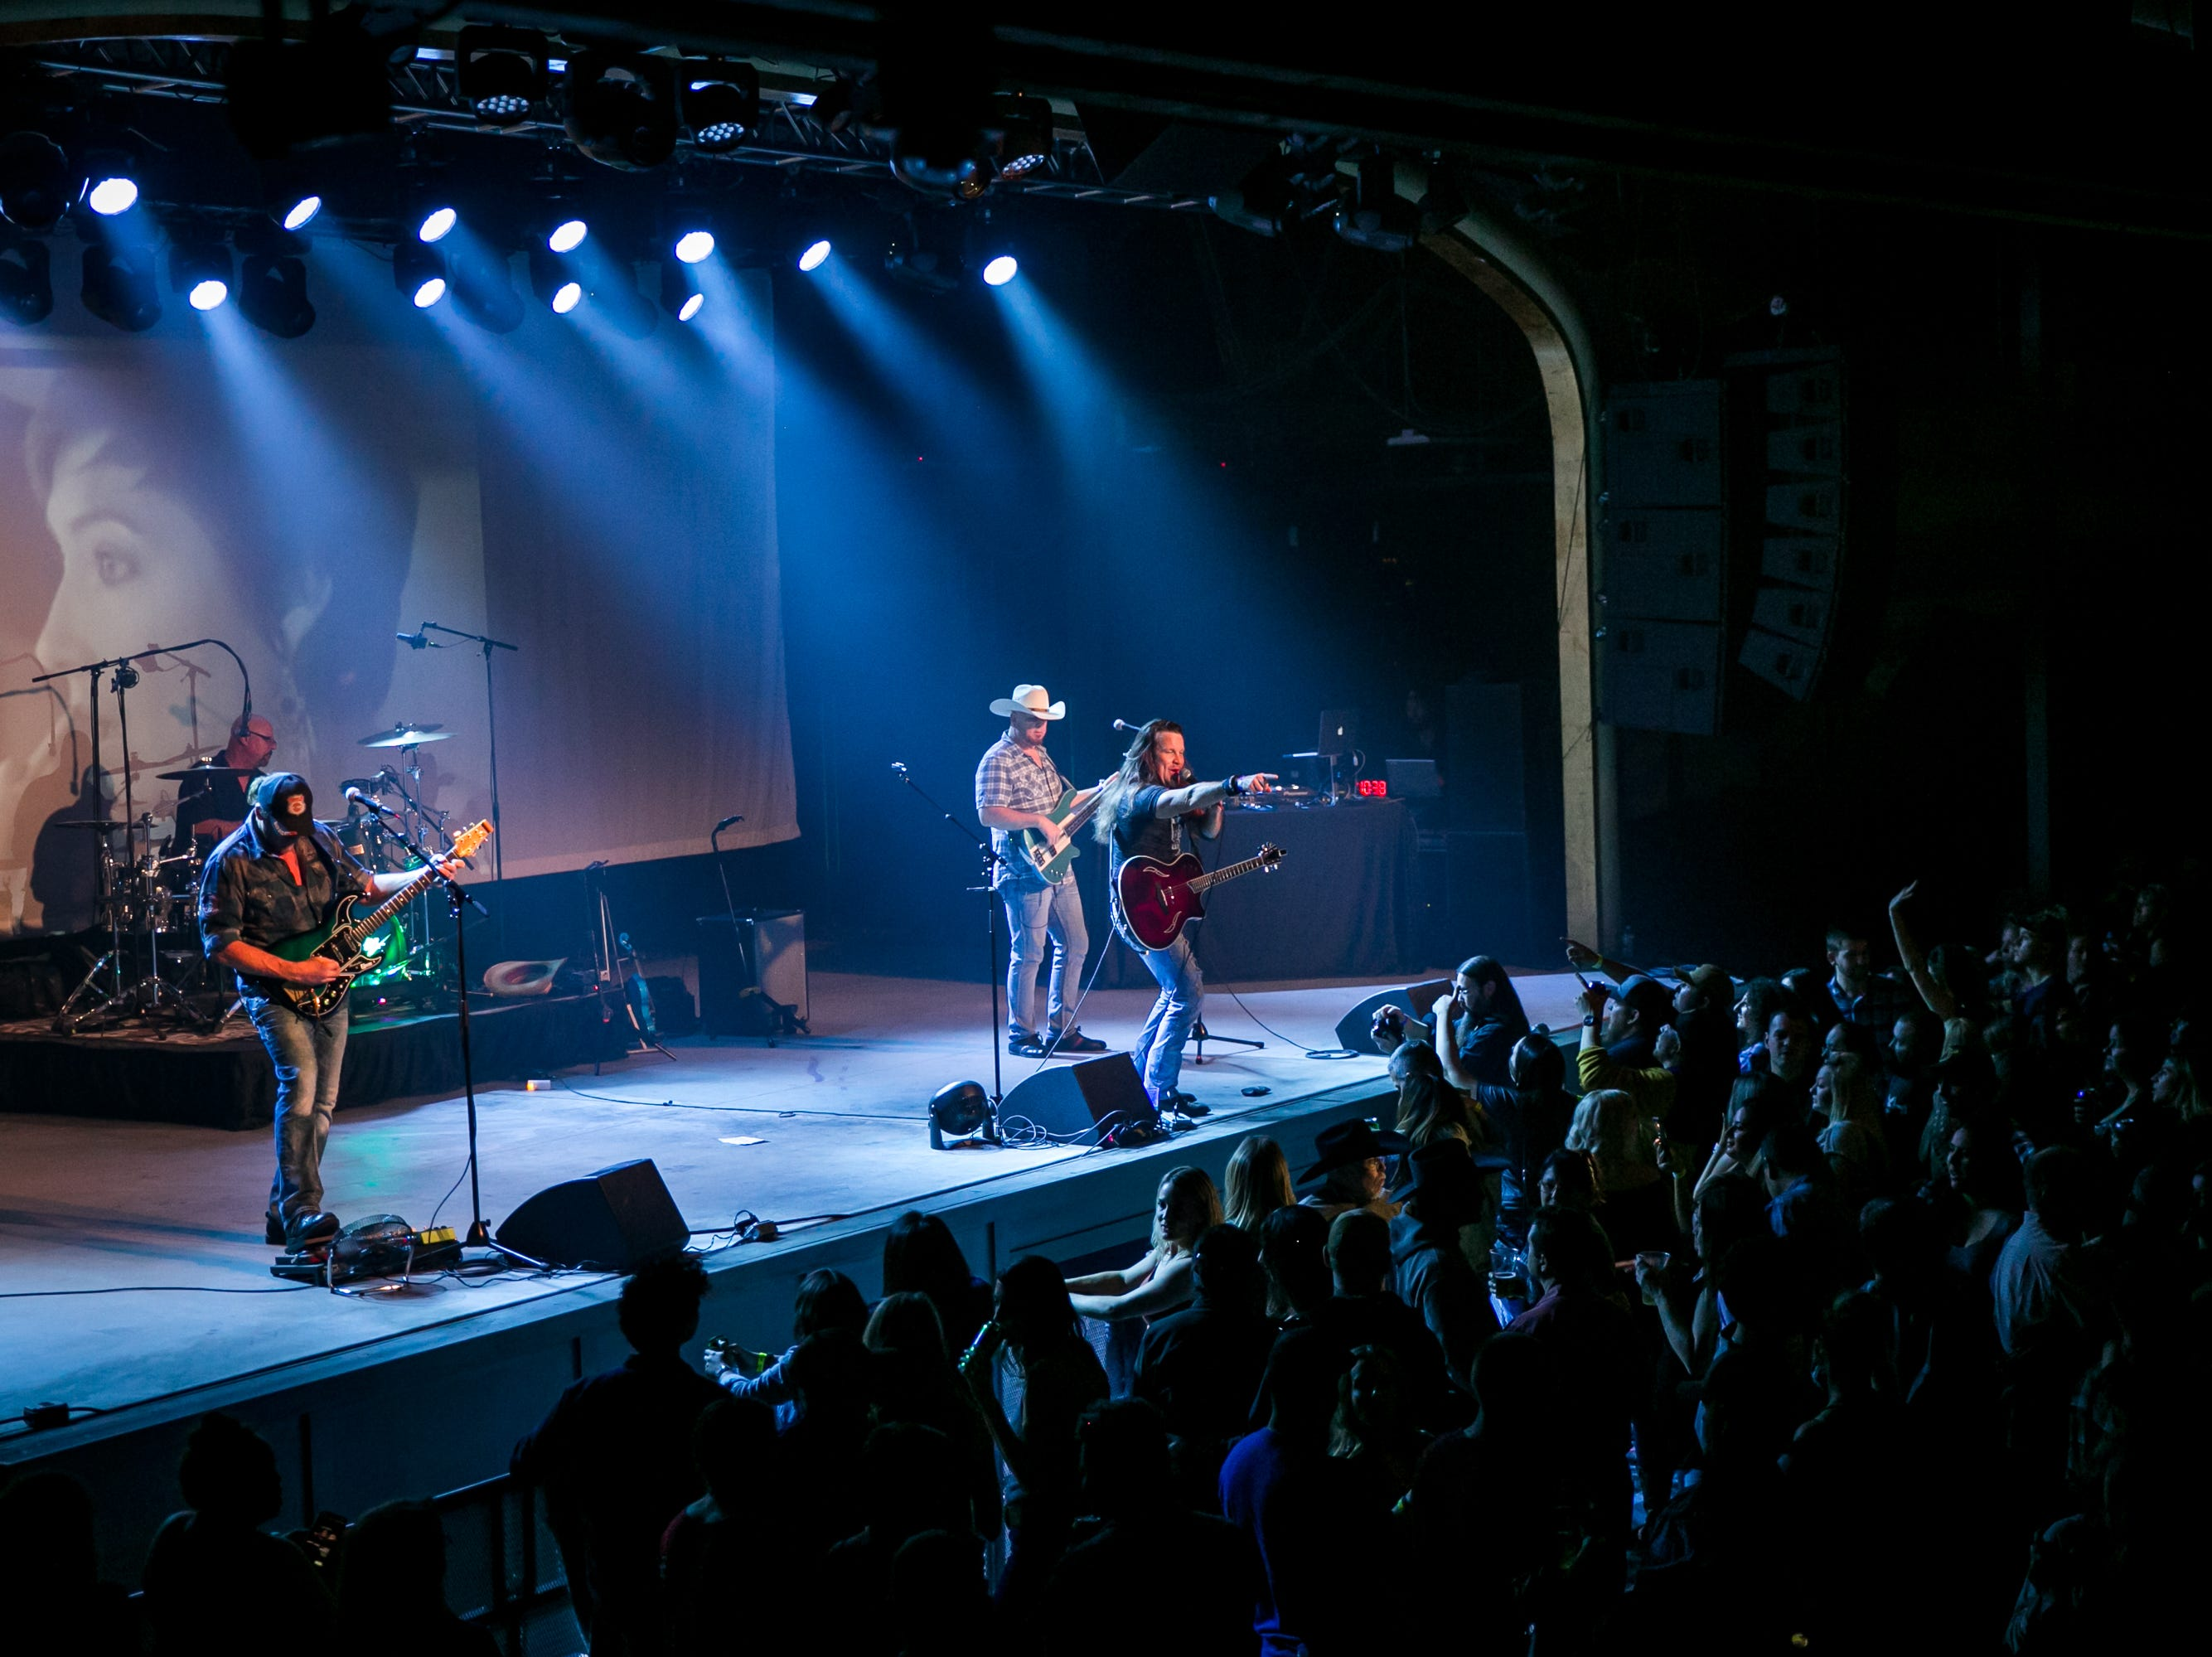 The audience loved Mogollon during the KMLE Country 90's Throwback at The Van Buren on Friday, Jan. 11, 2019.